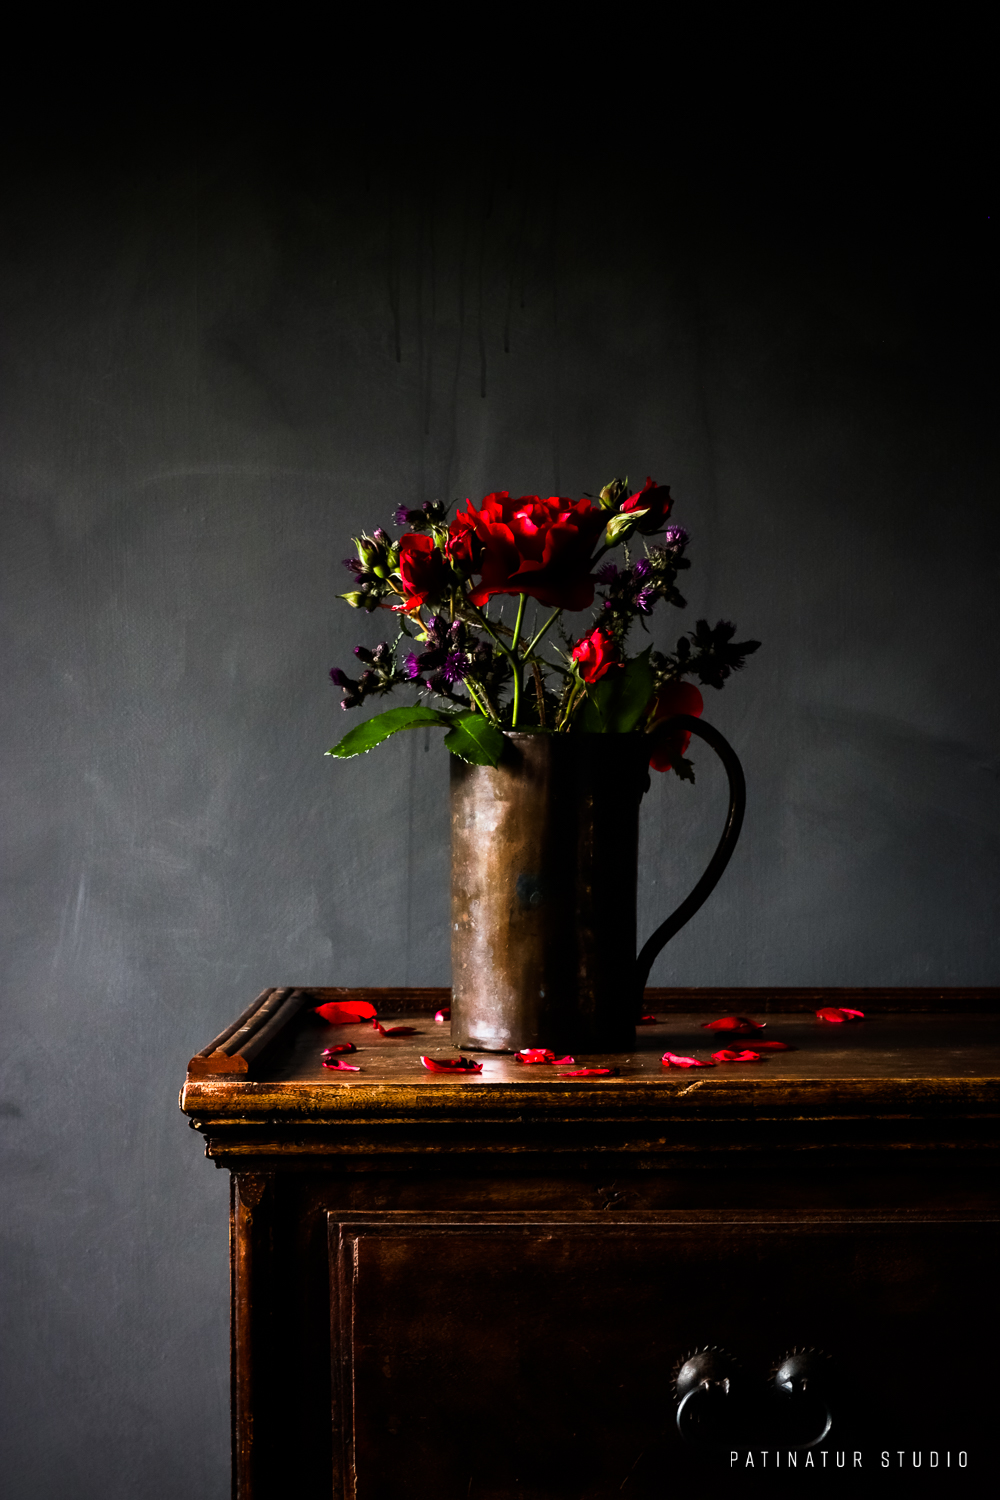 Photo art |Dark and moody still life with red roses and thistles in copper jug.